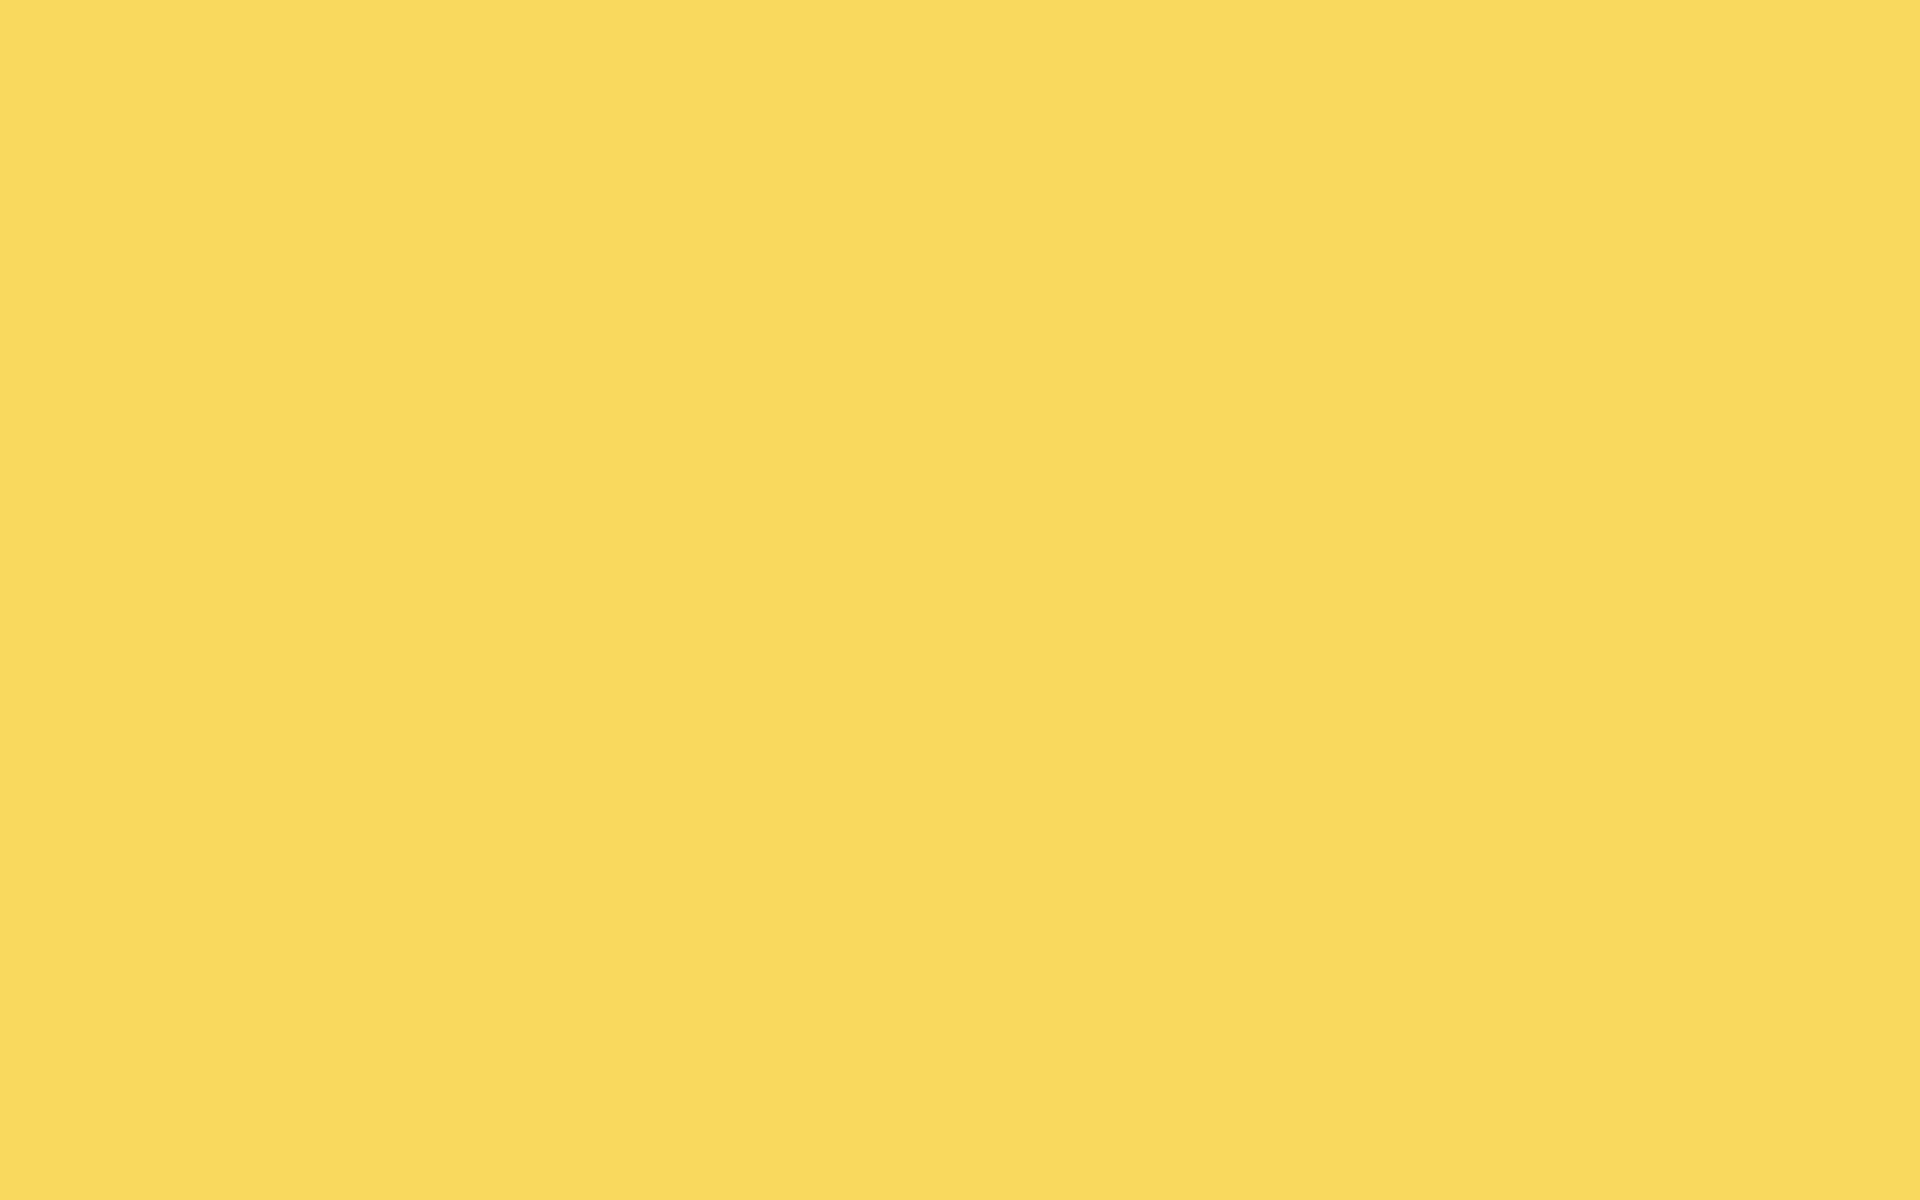 1920x1200 Royal Yellow Solid Color Background